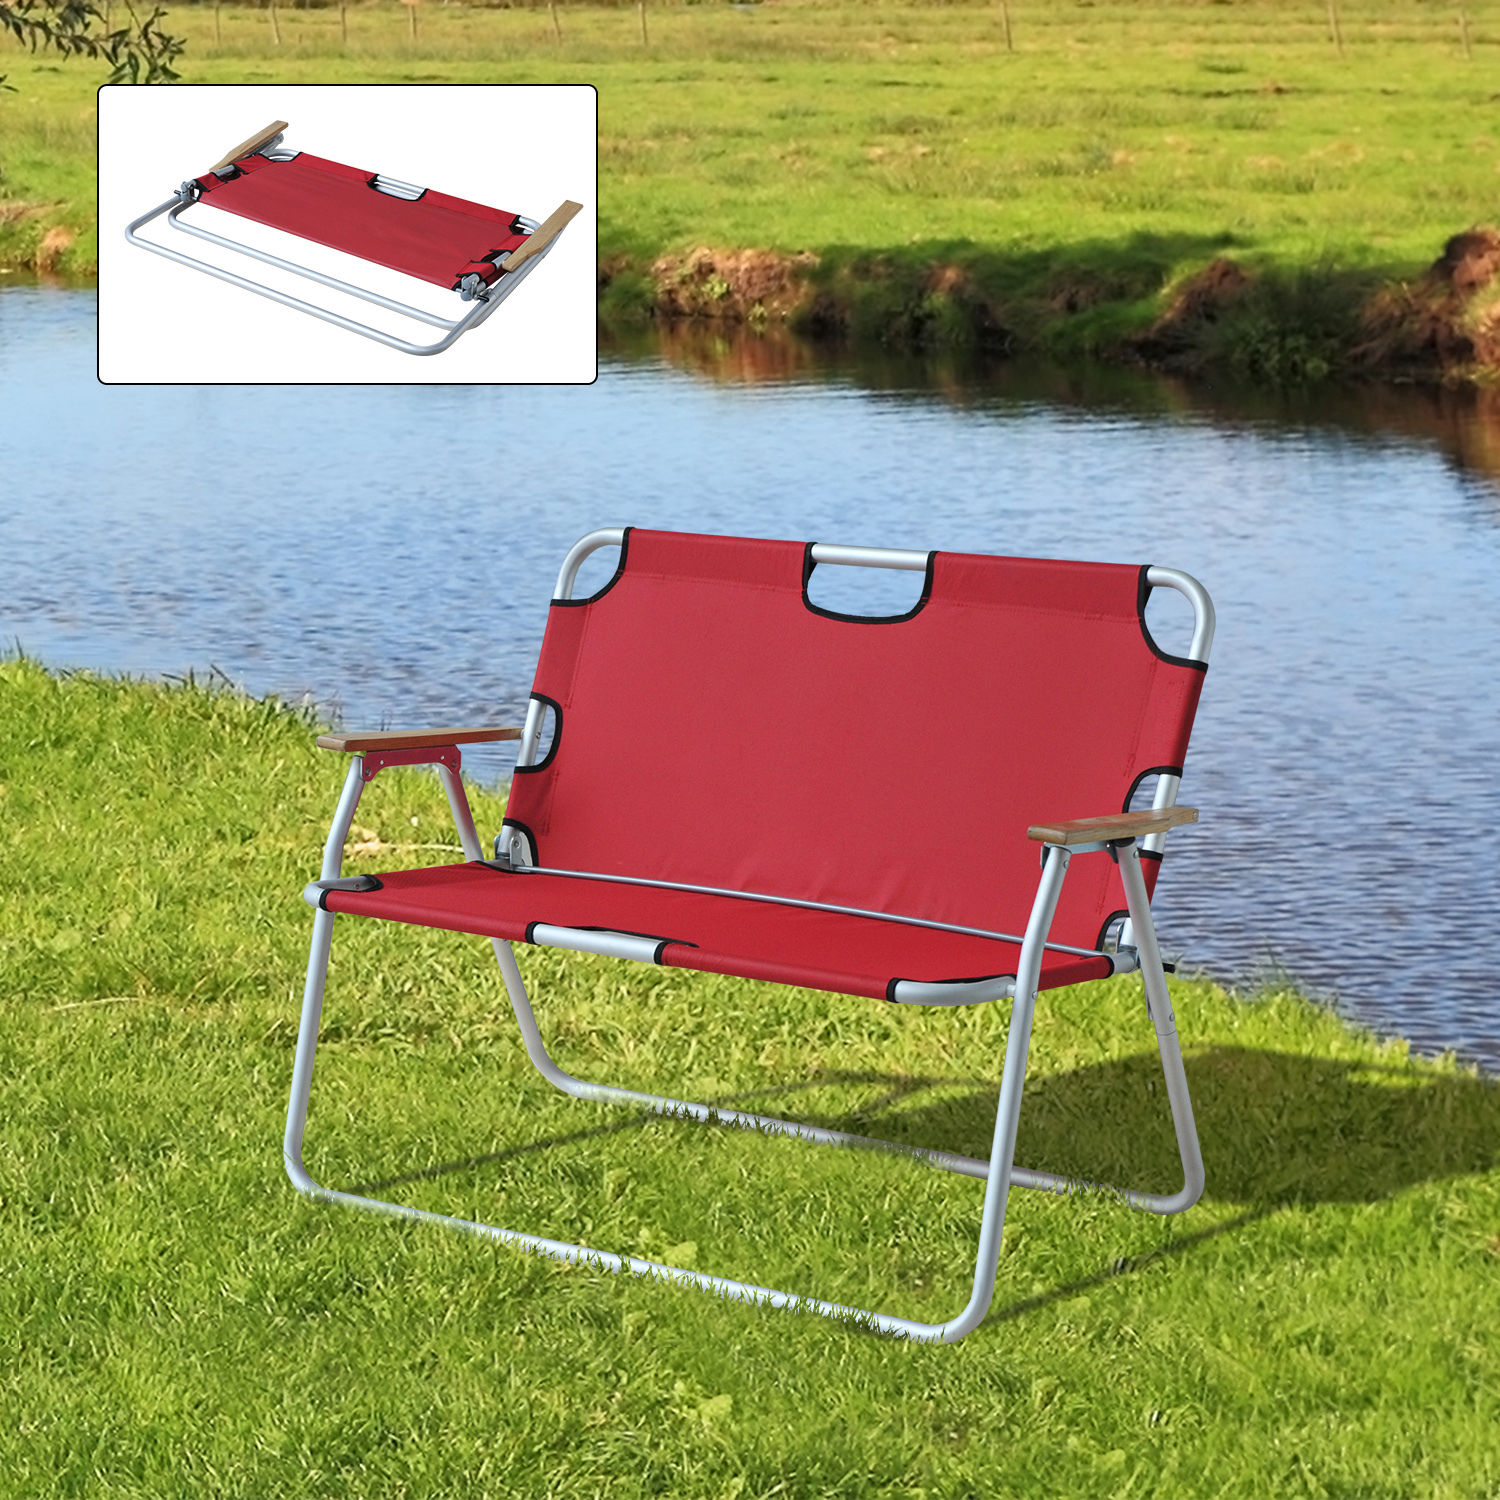 Outdoor Lawn Chair 2 Person Seat Foldable Picnic Camping Bench